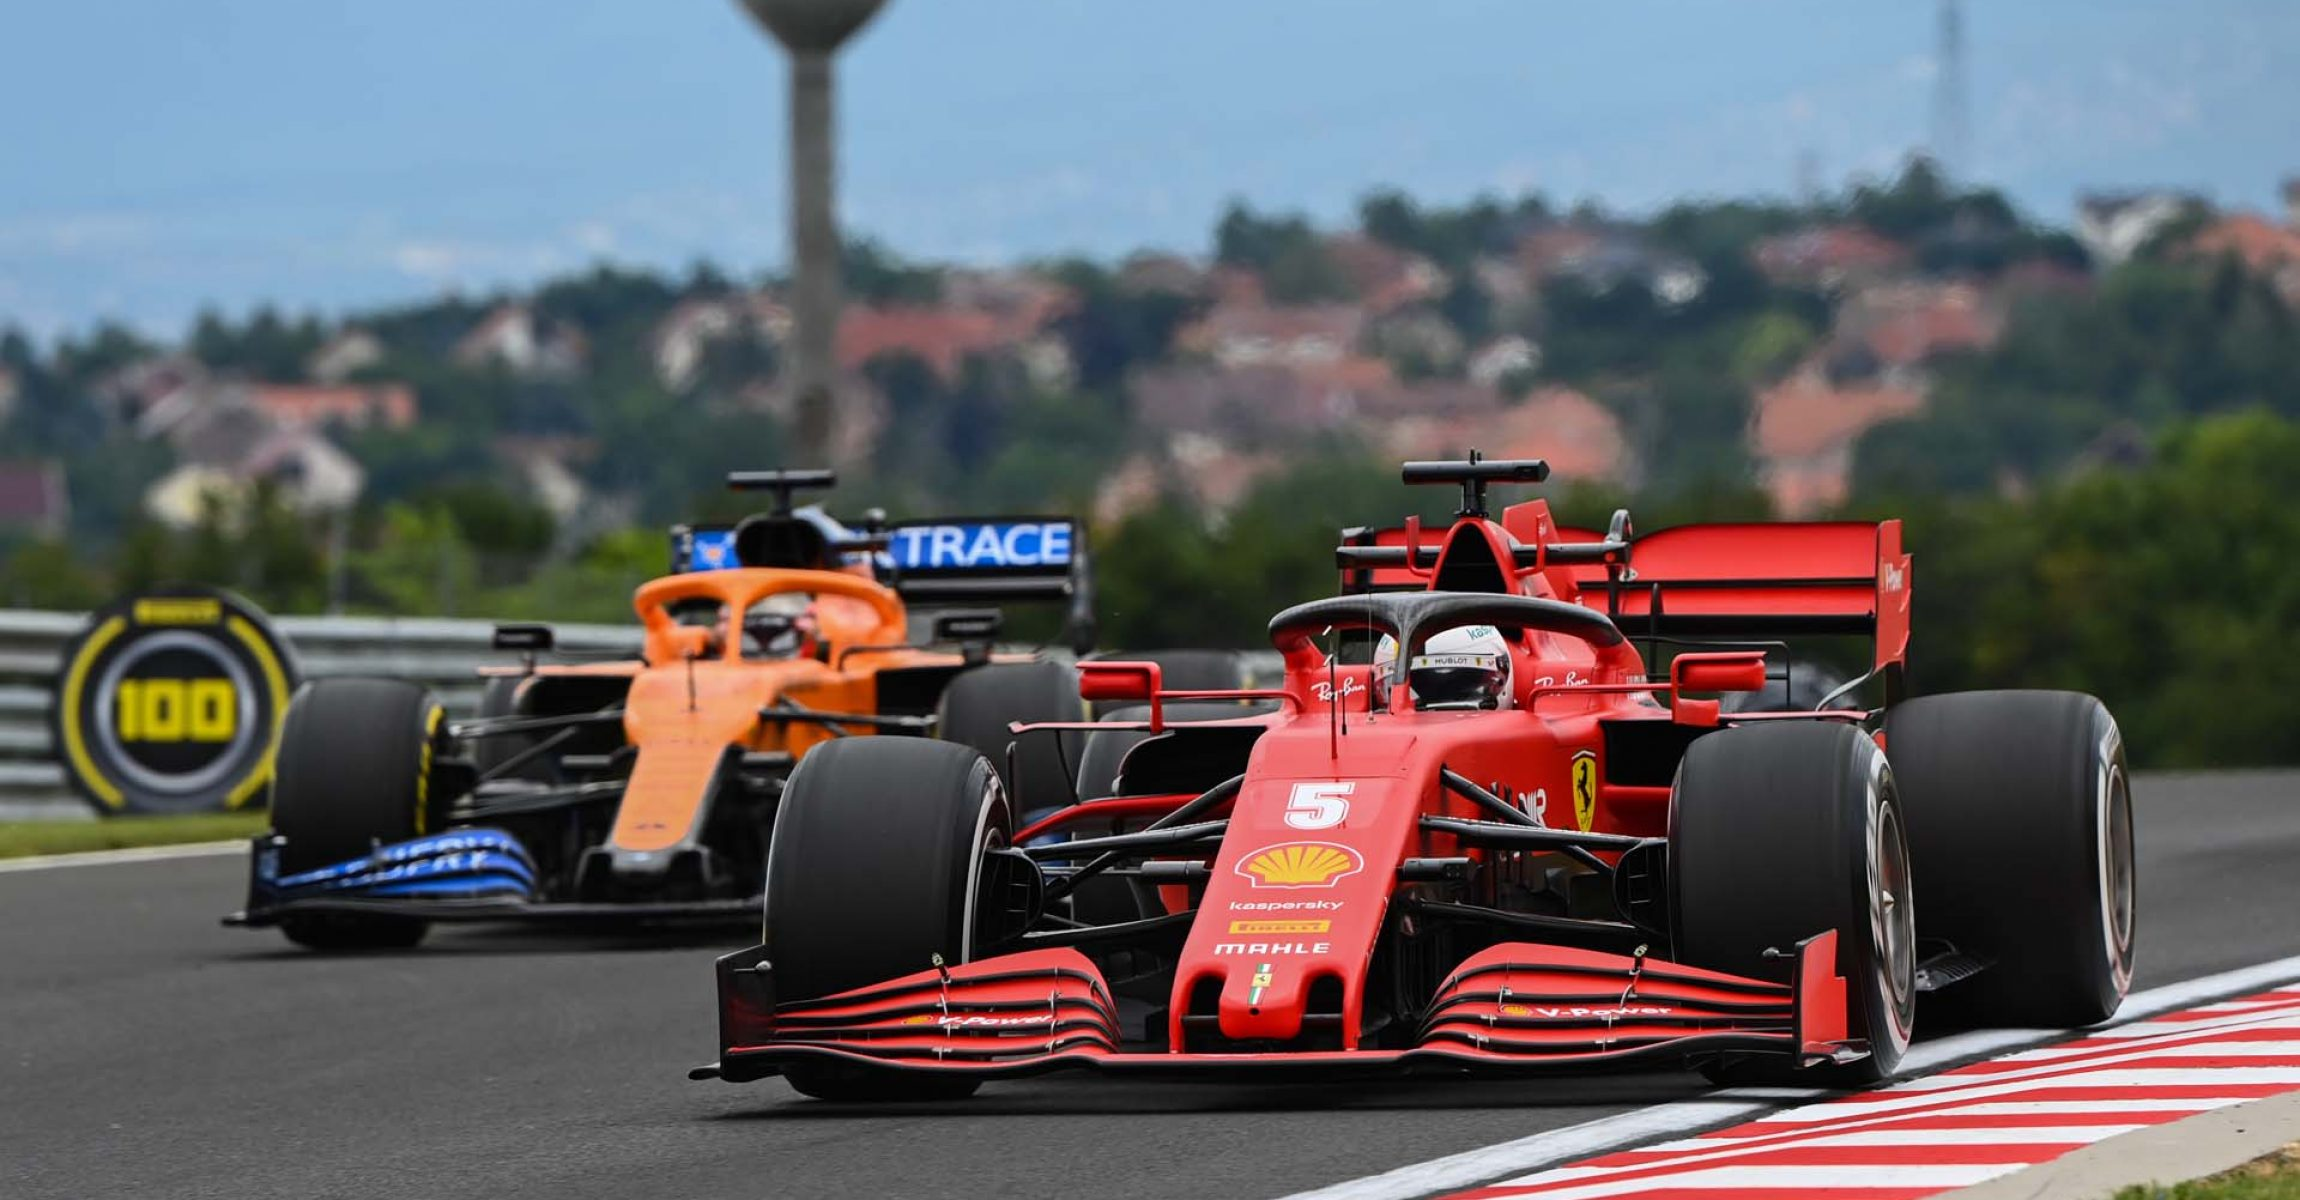 HUNGARORING, HUNGARY - JULY 17: Sebastian Vettel, Ferrari SF1000, leads Carlos Sainz, McLaren MCL35 during the Hungarian GP at Hungaroring on Friday July 17, 2020 in Budapest, Hungary. (Photo by Mark Sutton / LAT Images)